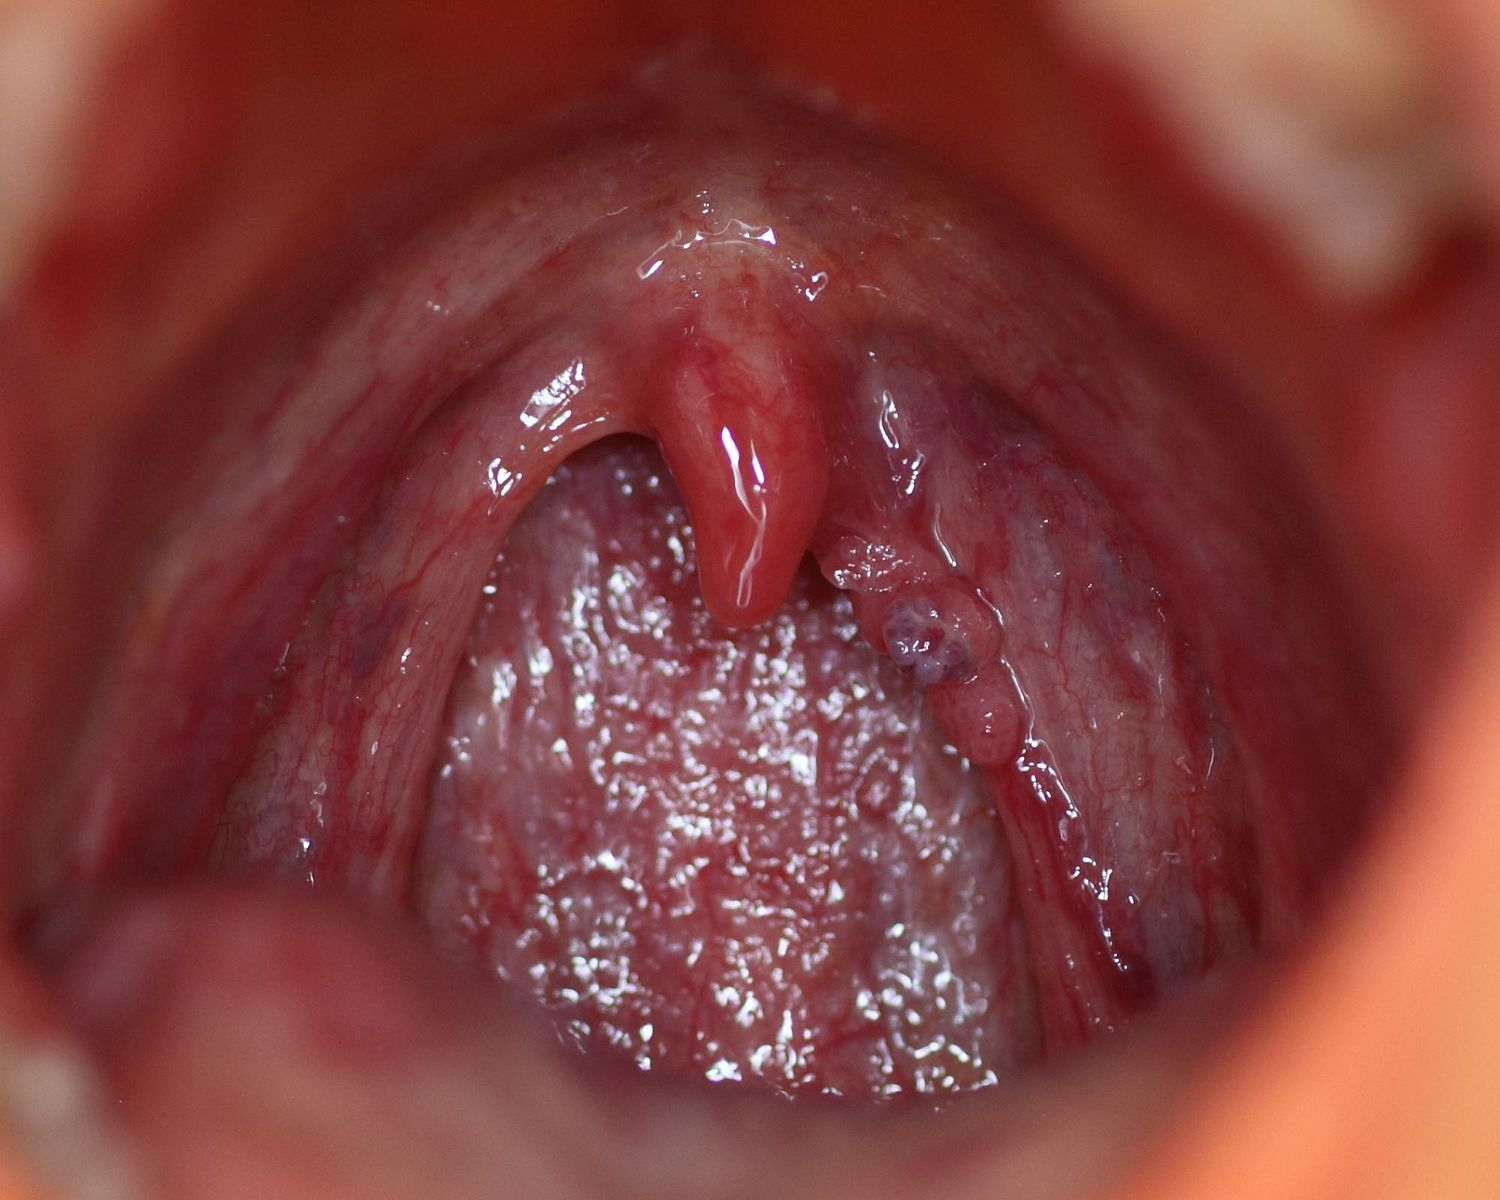 Hpv warts mouth look like - Traducere